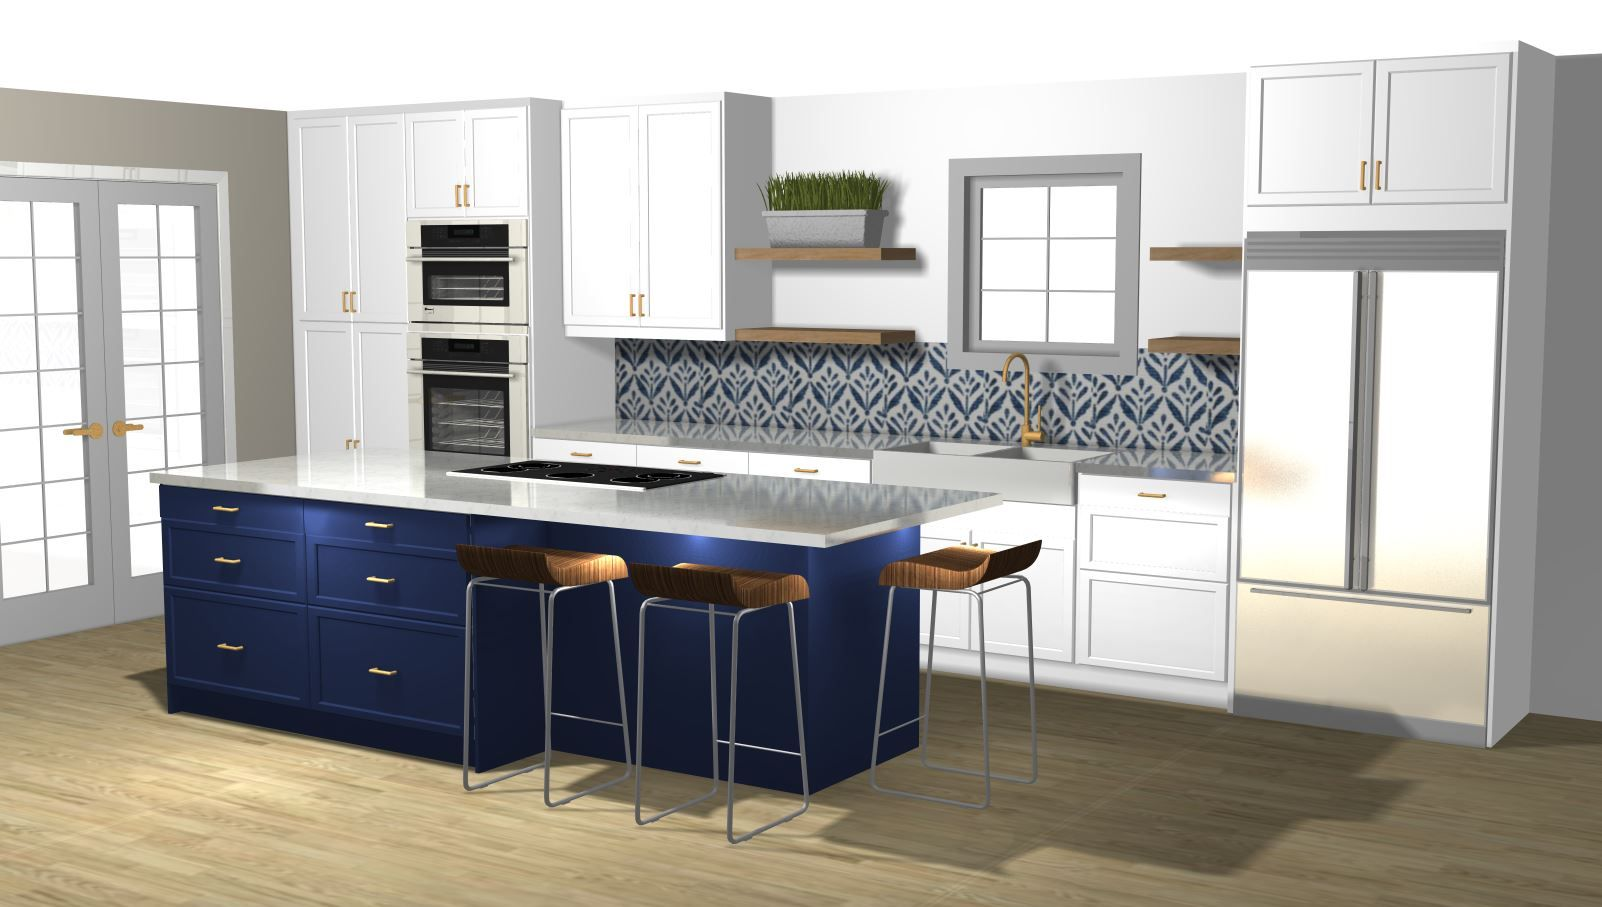 What To Expect From The Ikea Online Planning Service Kitchen Design Software Ikea Kitchen Design Professional Kitchen Design